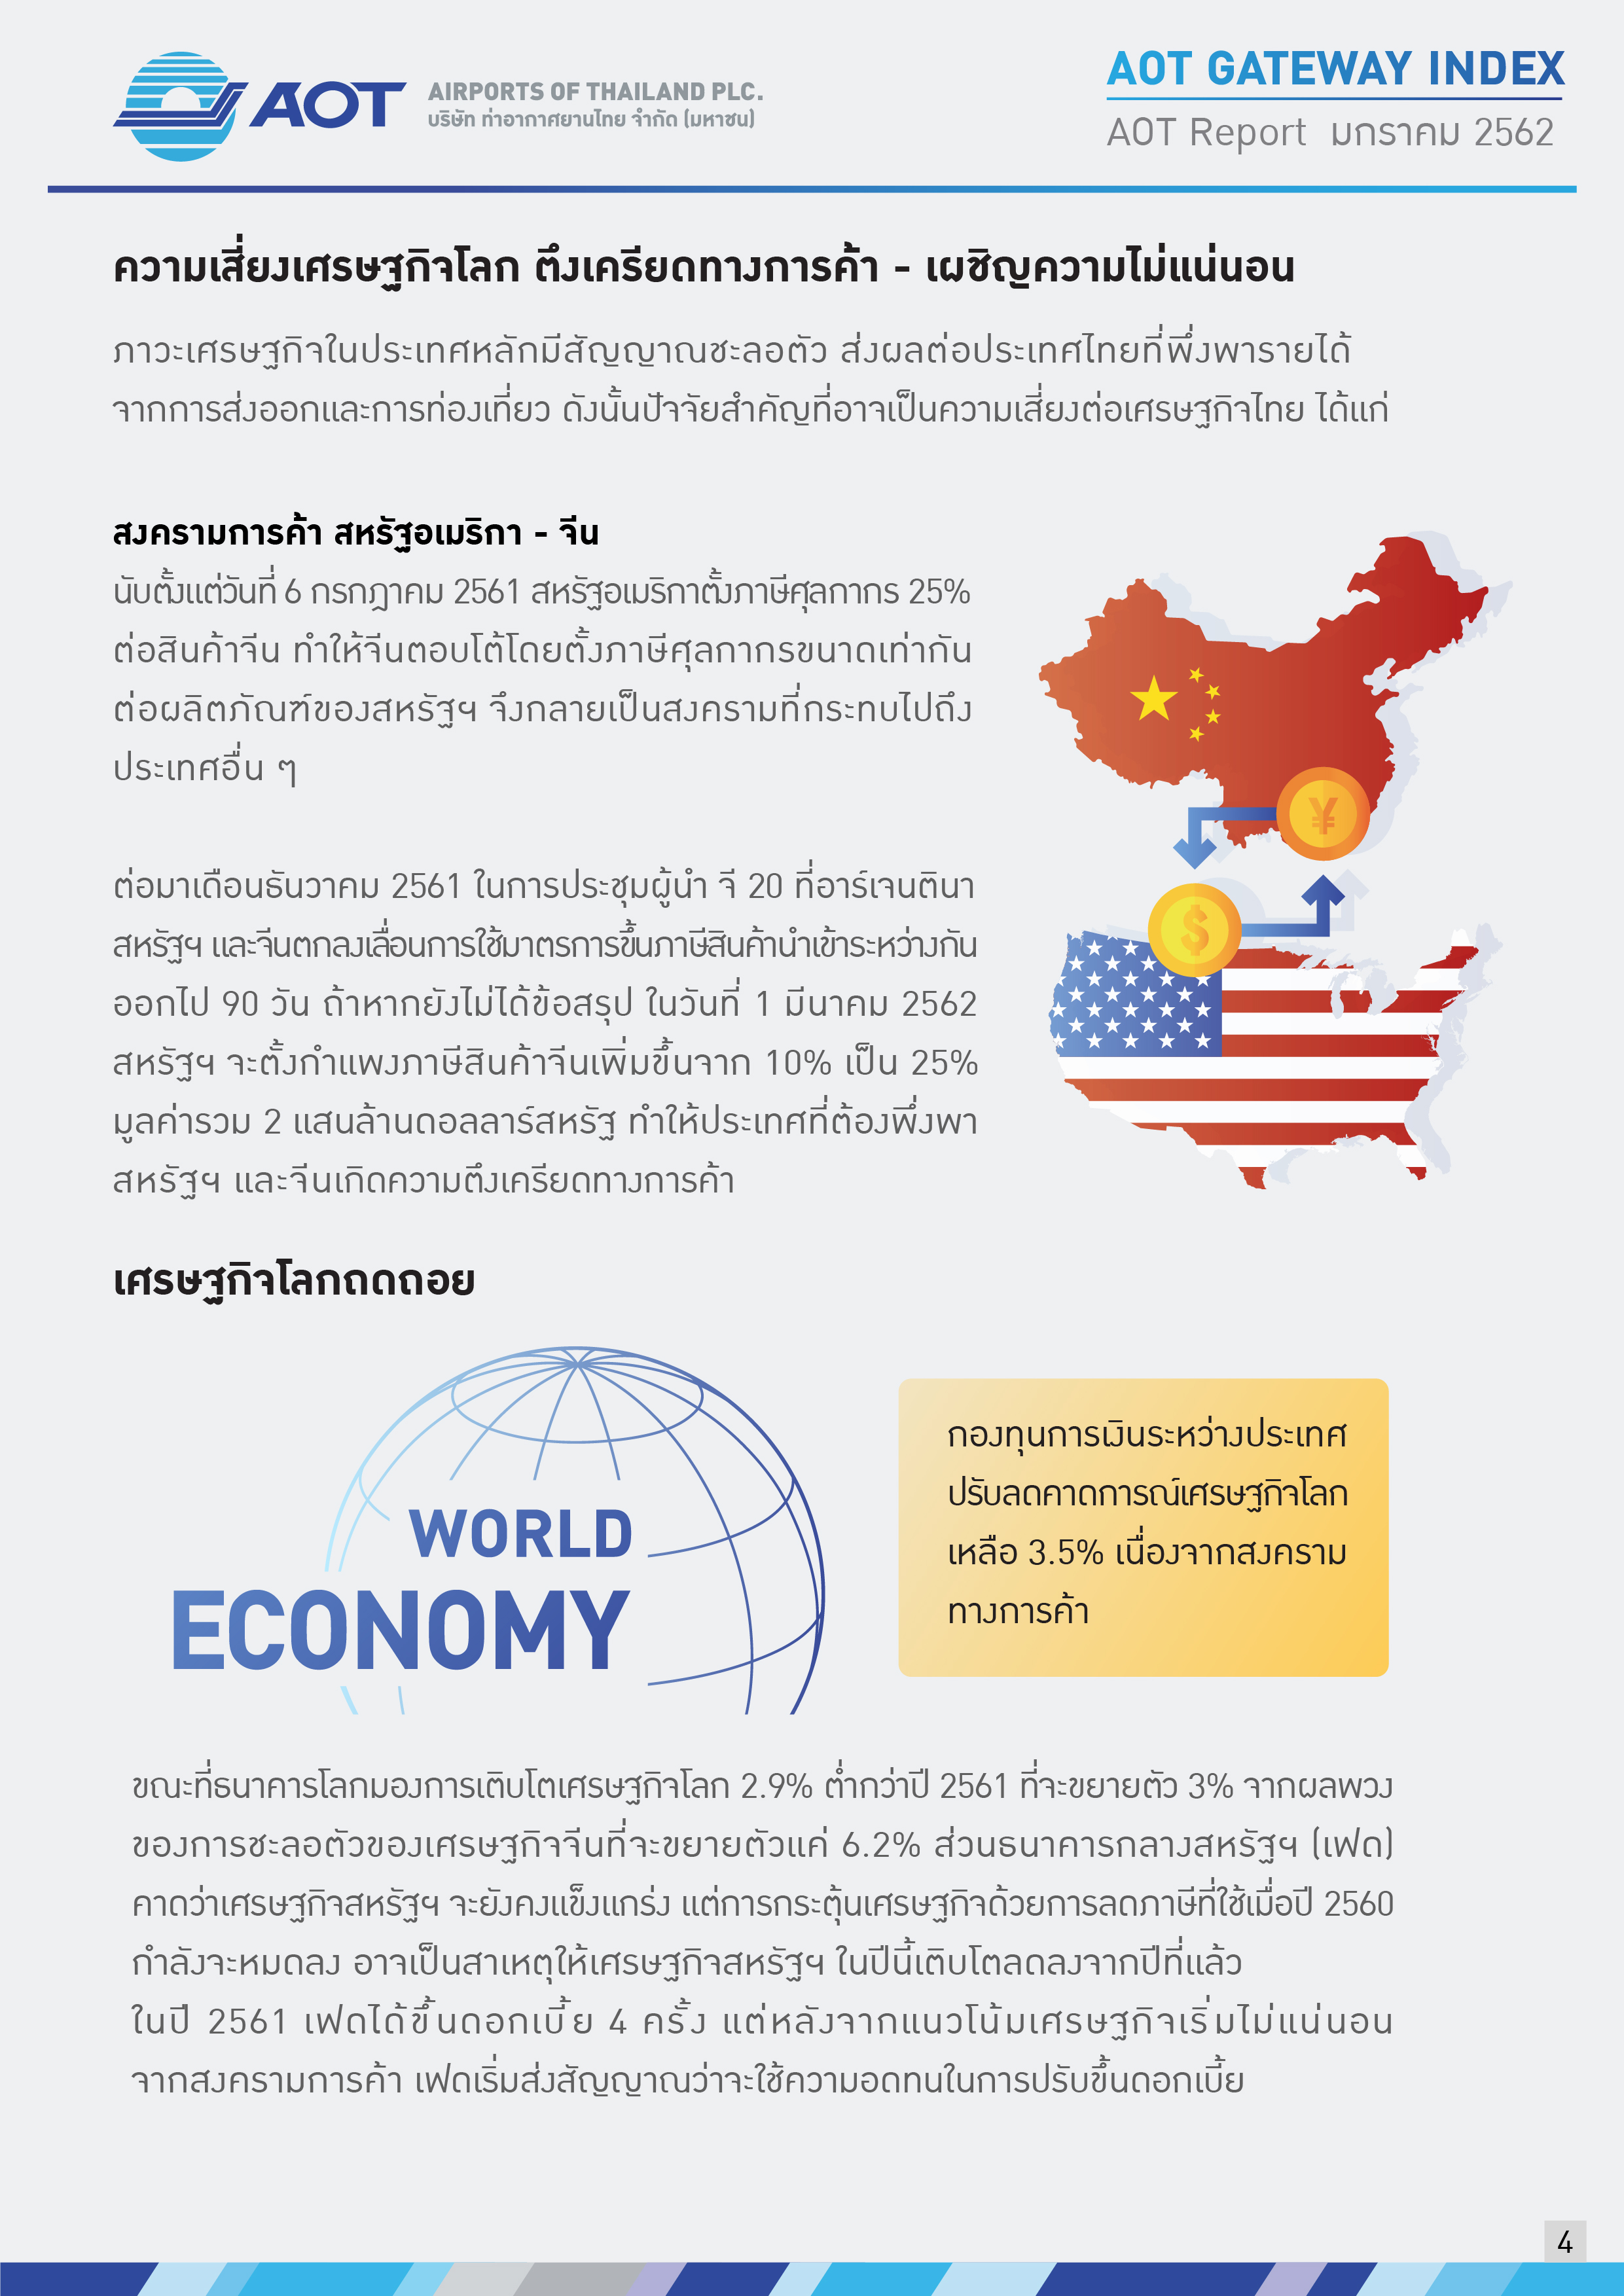 AOTcontent2019_Index_02_เศรษฐกิจโลก_V5_20190401_Page04